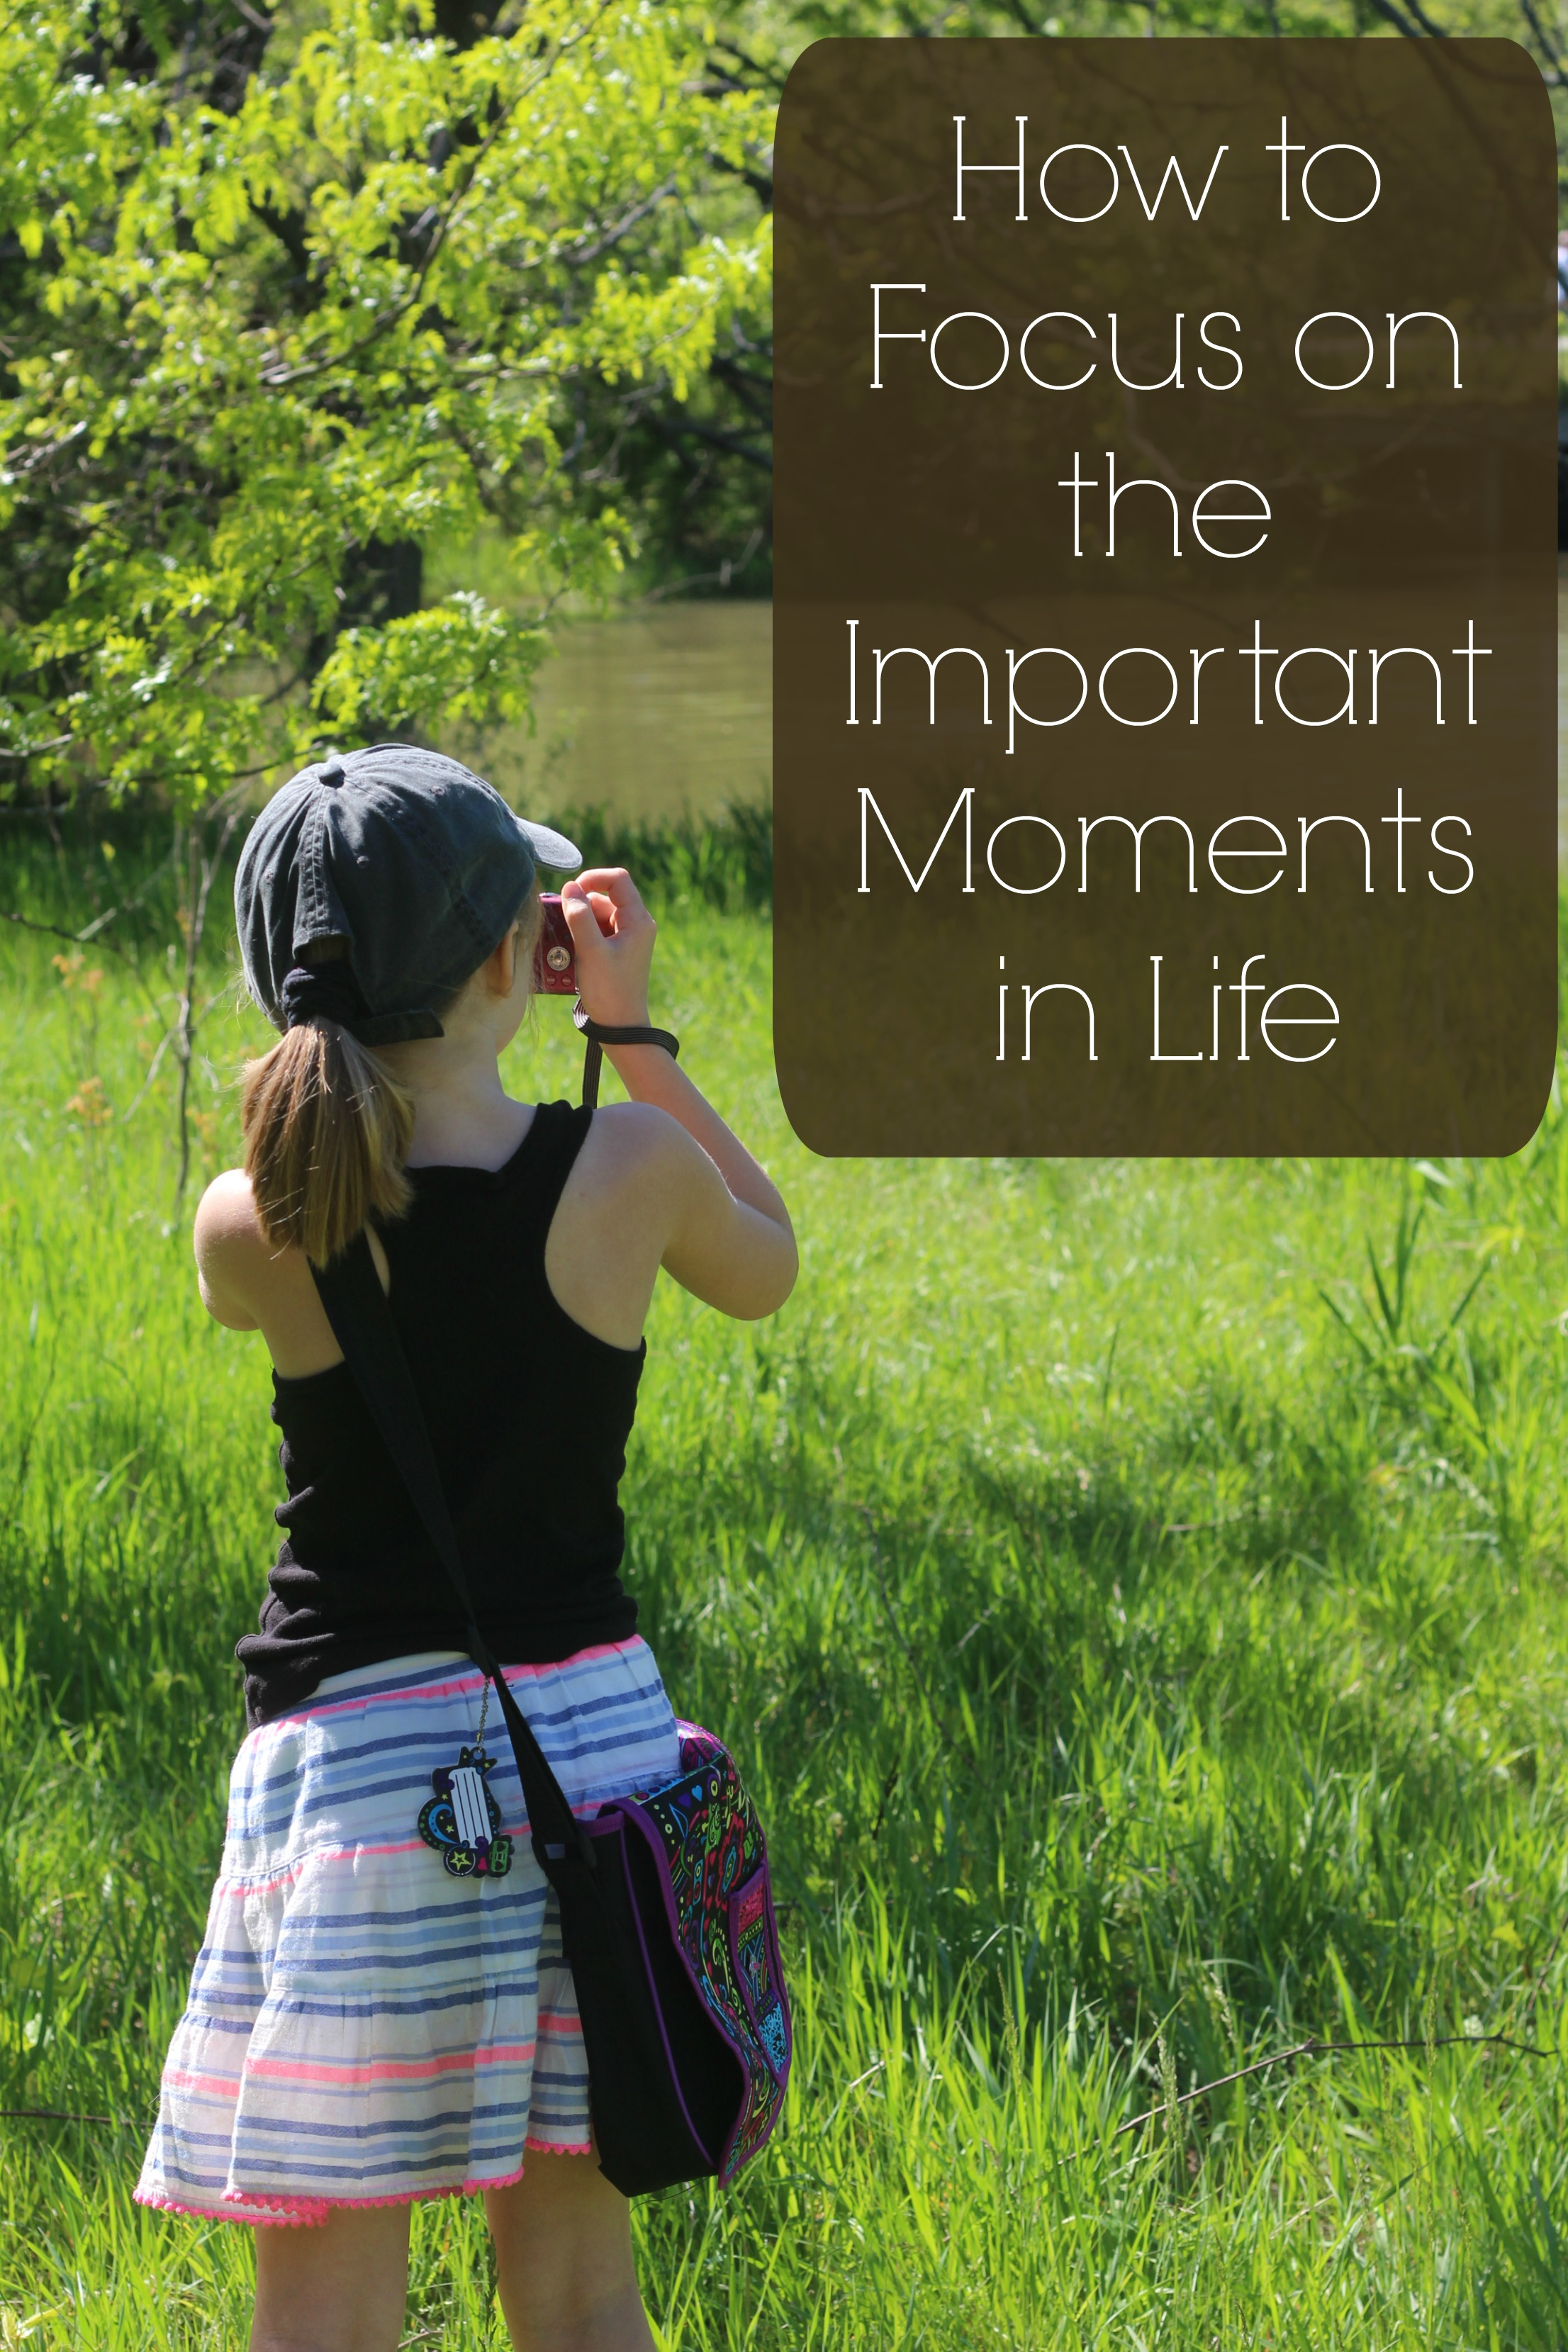 significant moments in the life of I am looking for a single word which refers to the important events of a person's life this might include birth, marriage, changing jobs, or anything else that the person feels is significant, but preferably when observed by looking at one's entire life.